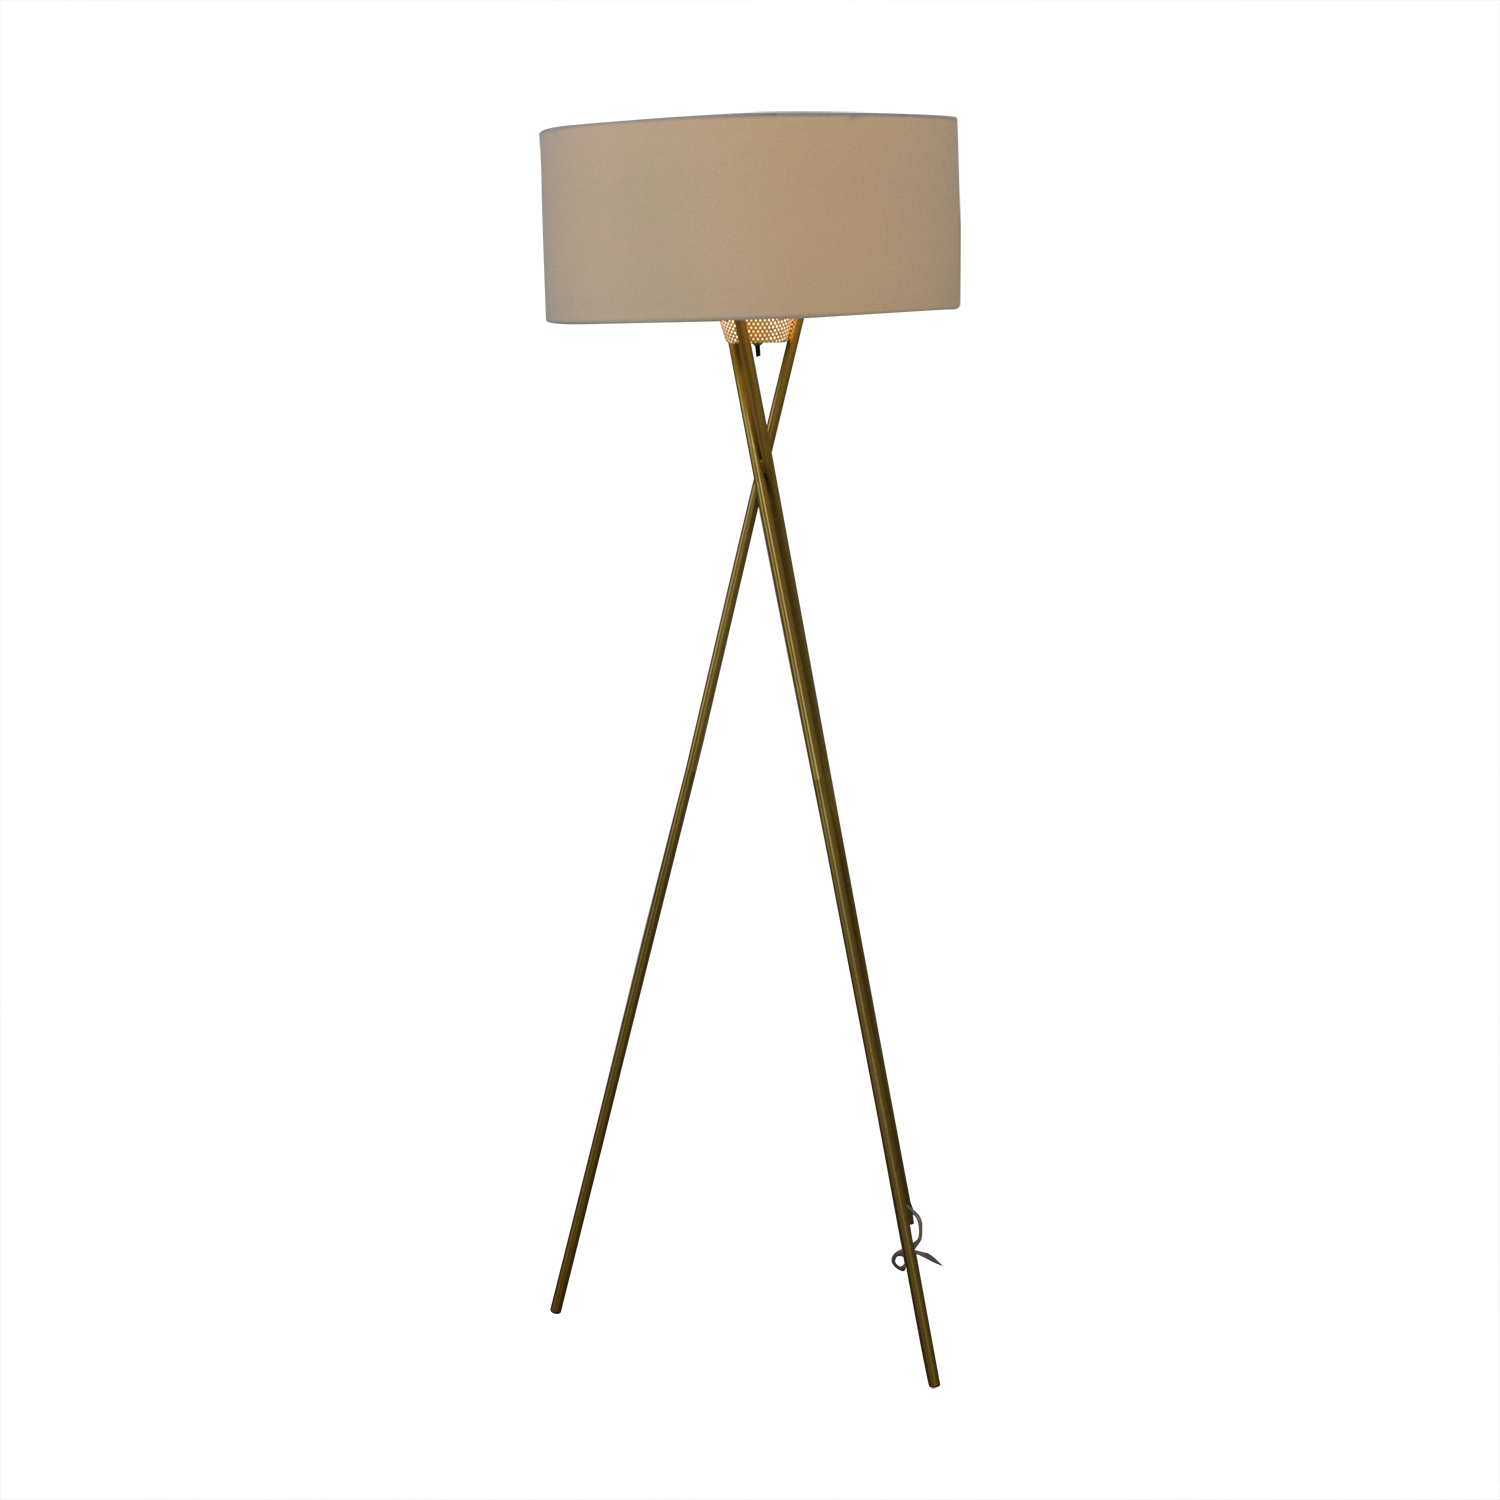 West Elm Mid Century Tripod Floor Lamp sale